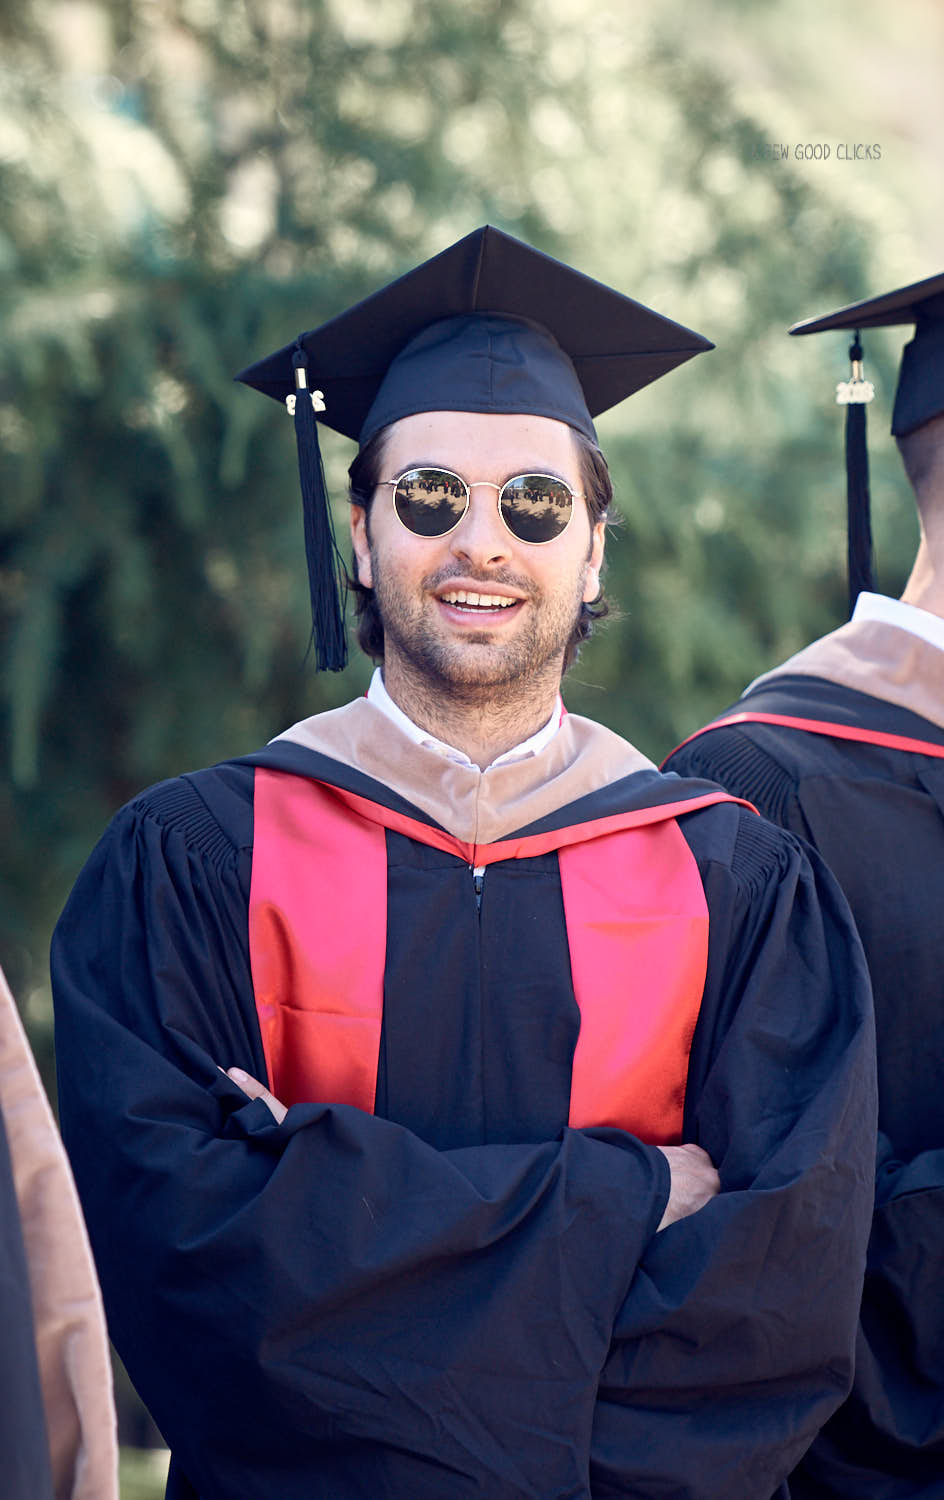 stanford-graduation-event-ceremony-photography-by-a-few-good-clicks